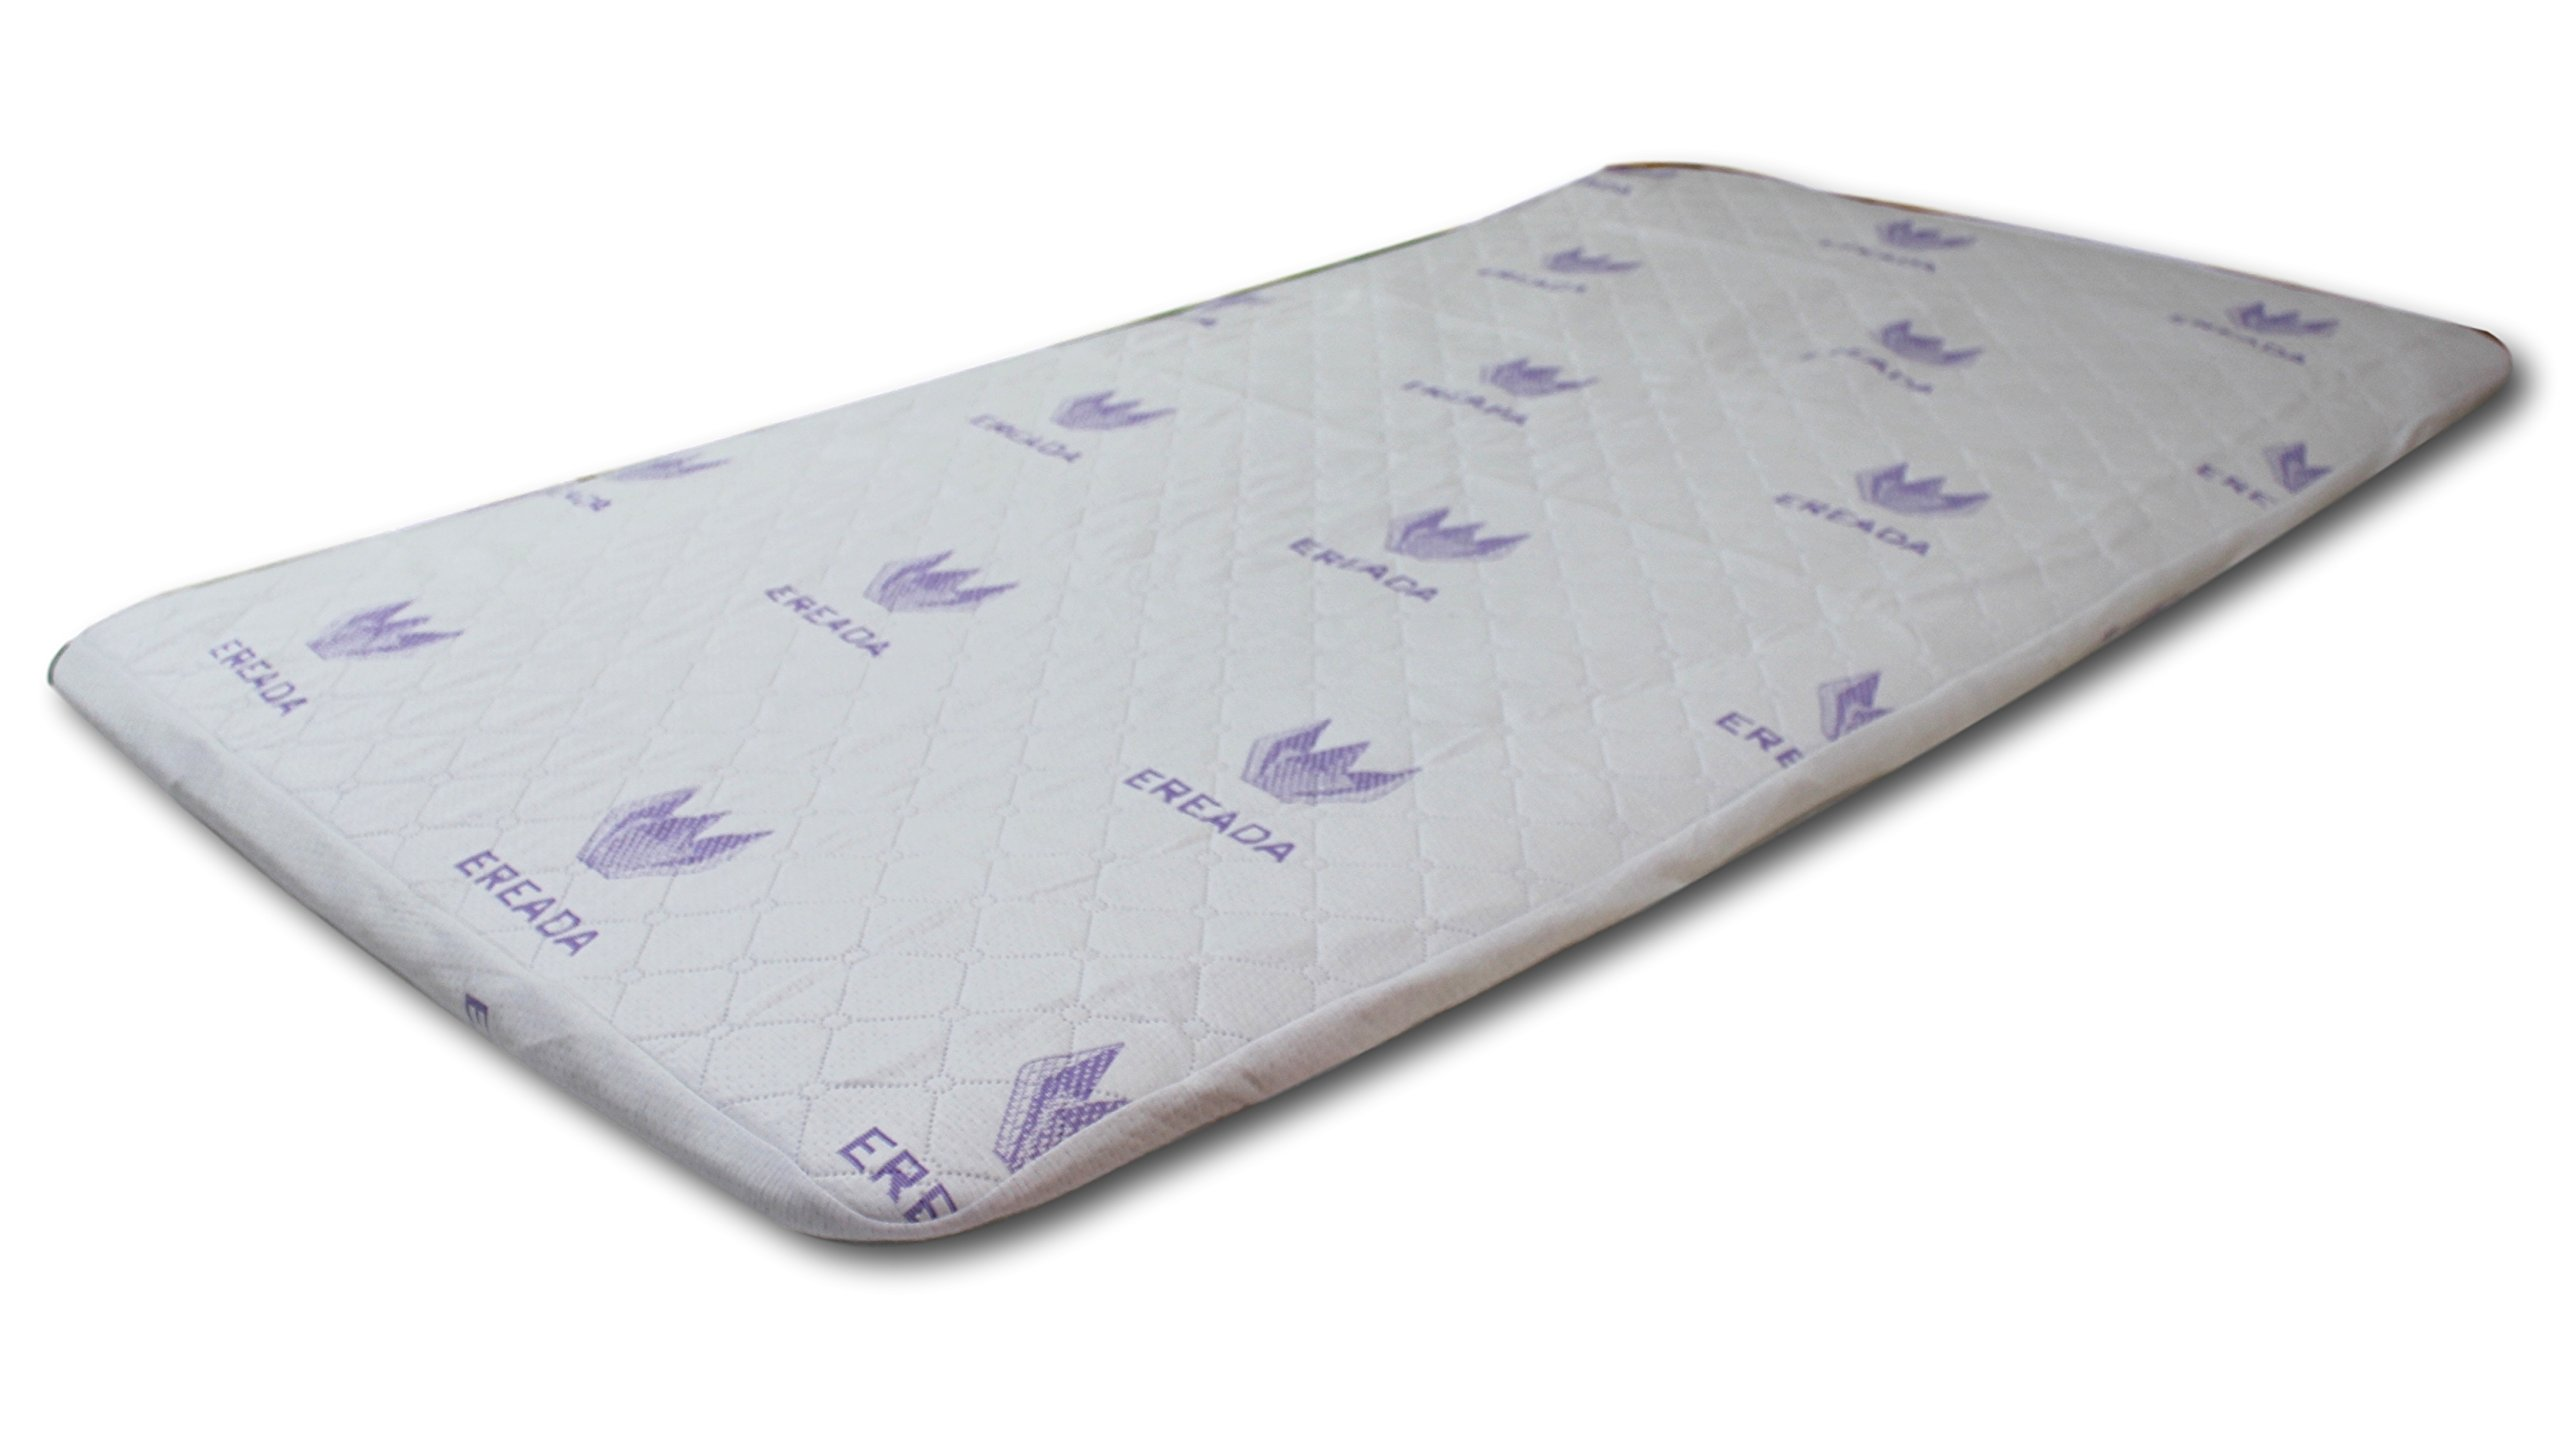 Far Infrared Amethyst Mat - FIR Heat - Bio Magnetic Field - PEMF - Negative Ions - Red Light Photon Therapy - Natural Amethyst - FDA Registered Korean Manufacturer - Purple (Single (XL) 75''L x 39''W) by Bio Amethyst (Image #6)